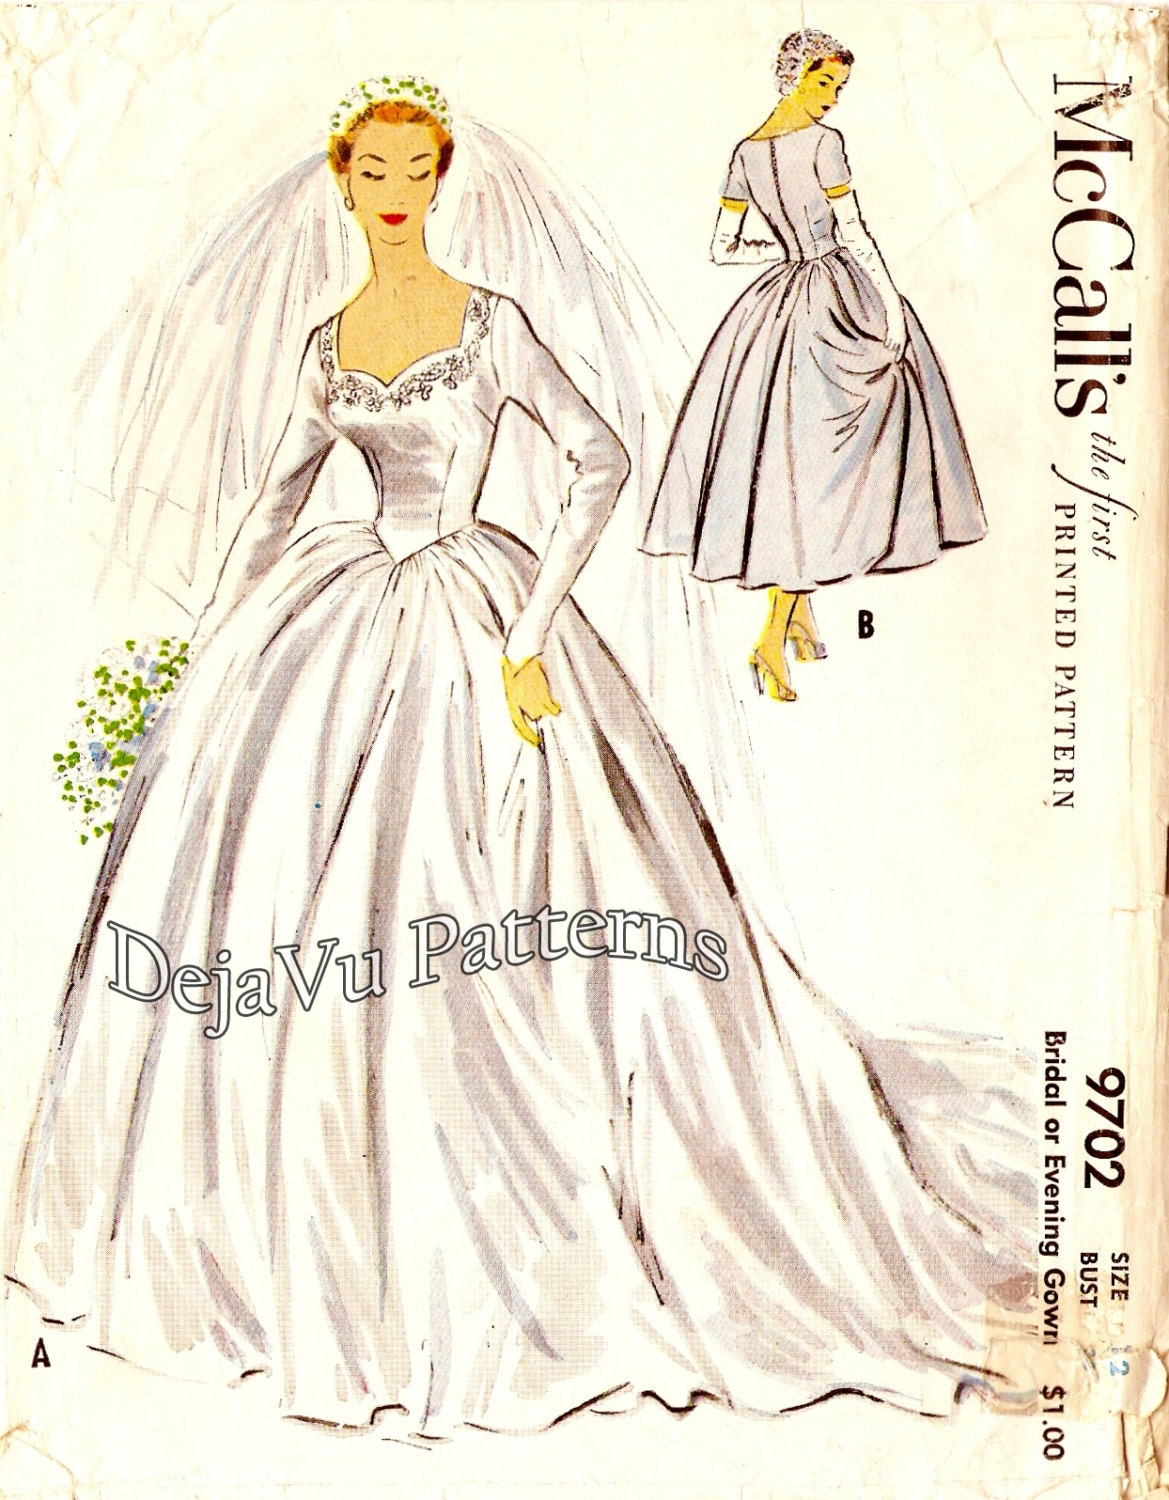 Mccalls 9702 1950s bridal gown wedding dress pattern sz 12 for Wedding dress patterns vintage